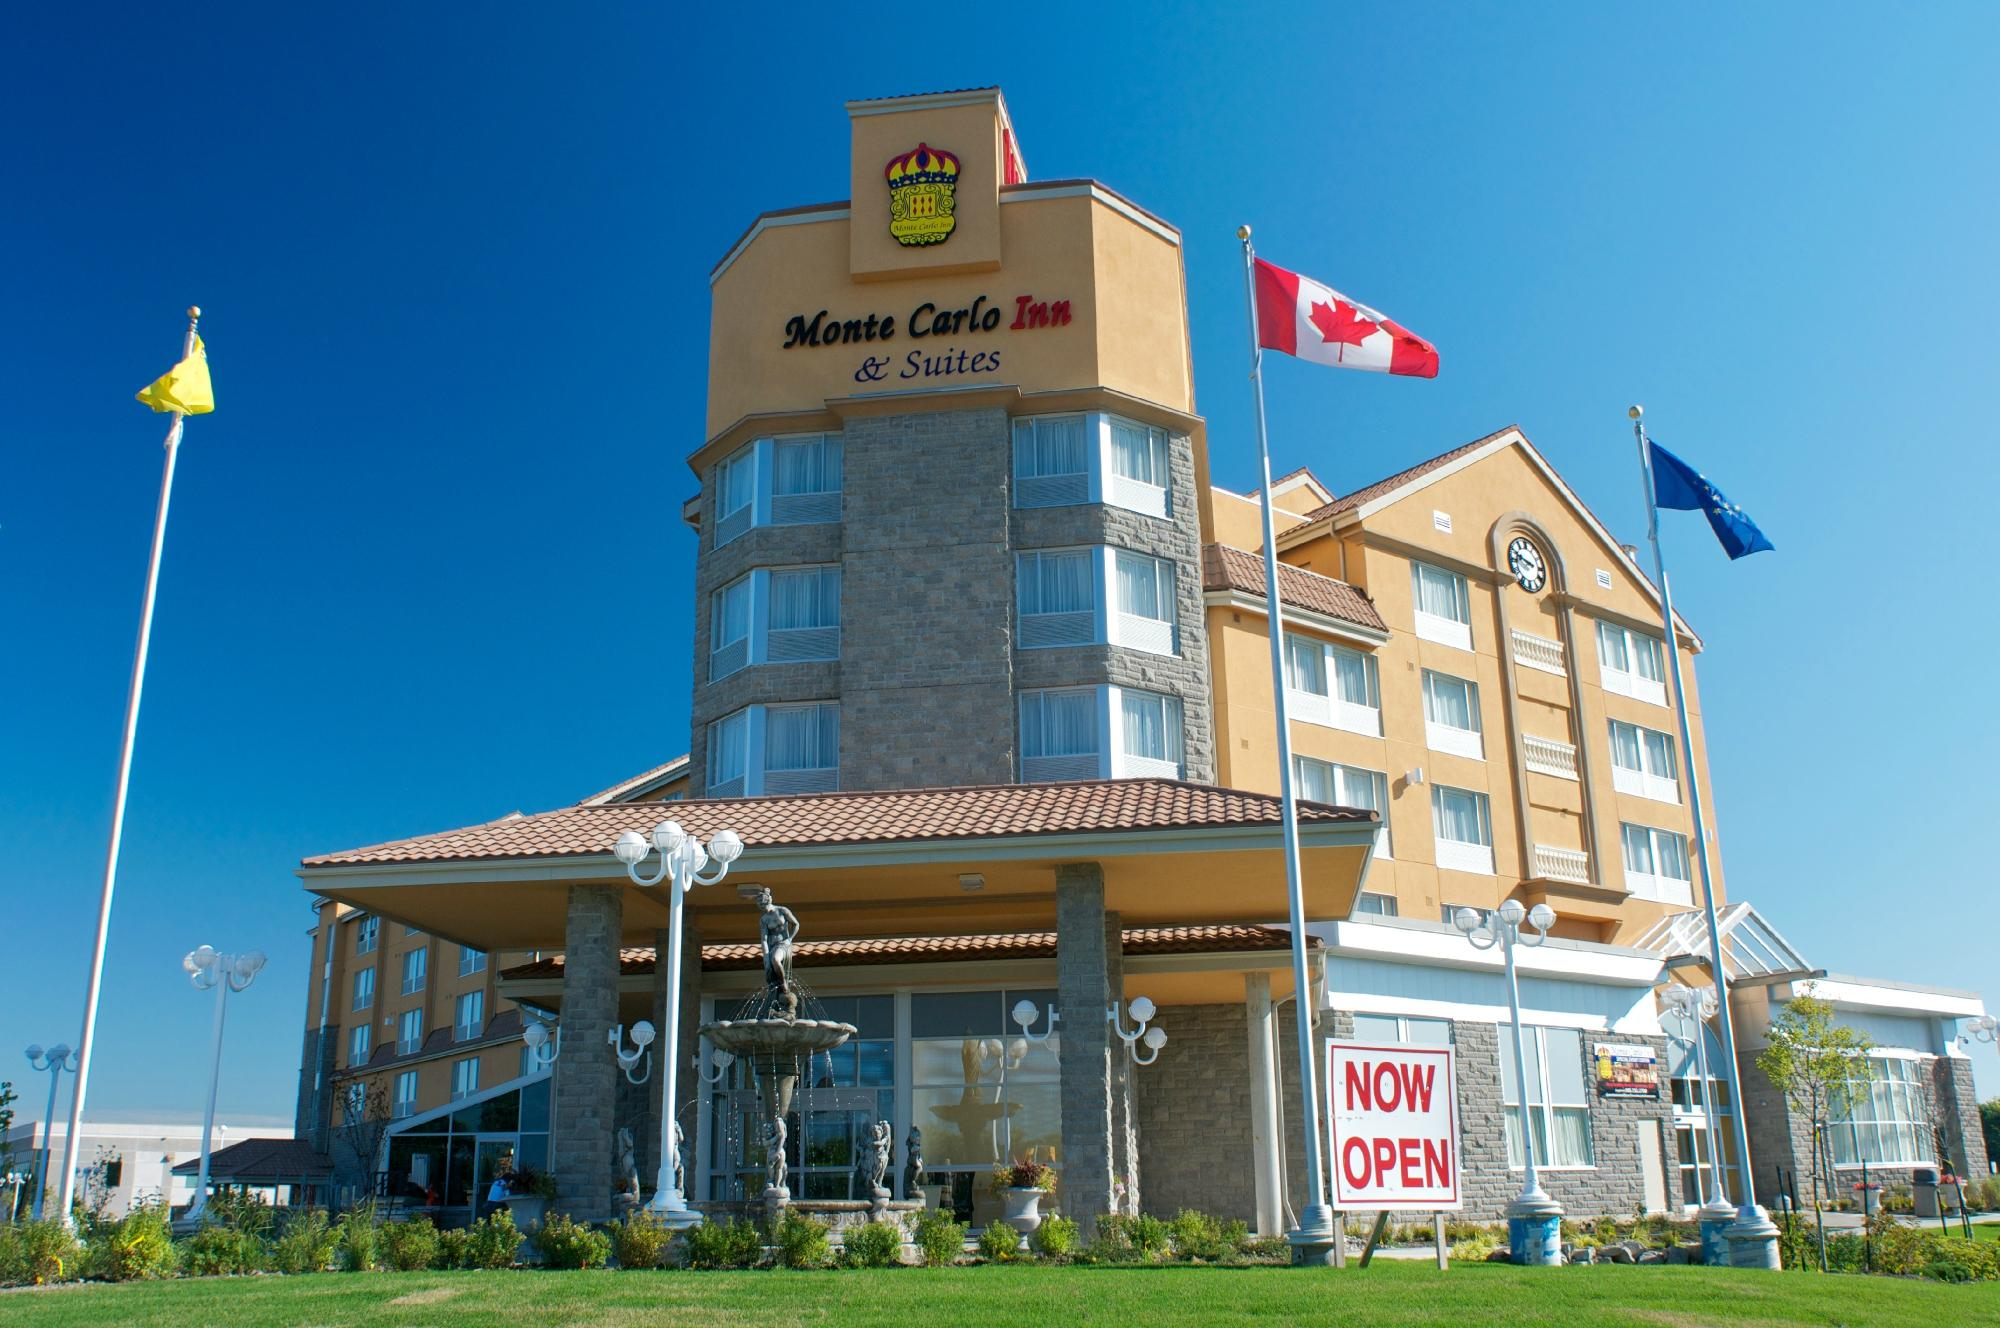 ‪Monte Carlo Inn & Suites Downtown Markham‬